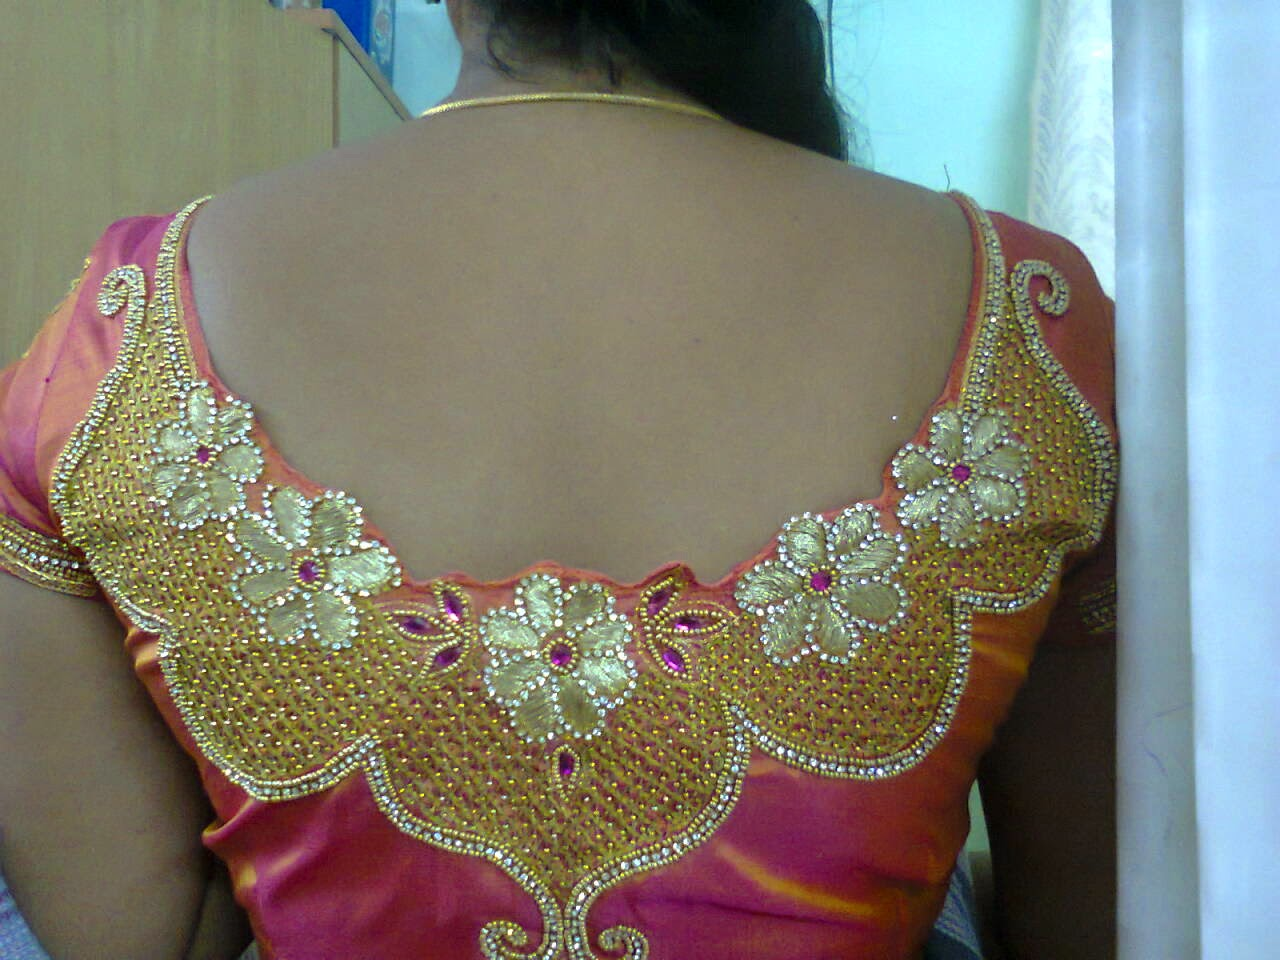 Now We Are The Best Rated For Hand Embroidery And Machine Works On Bridal Blouses Wedding Sarees In Chennai Also Do